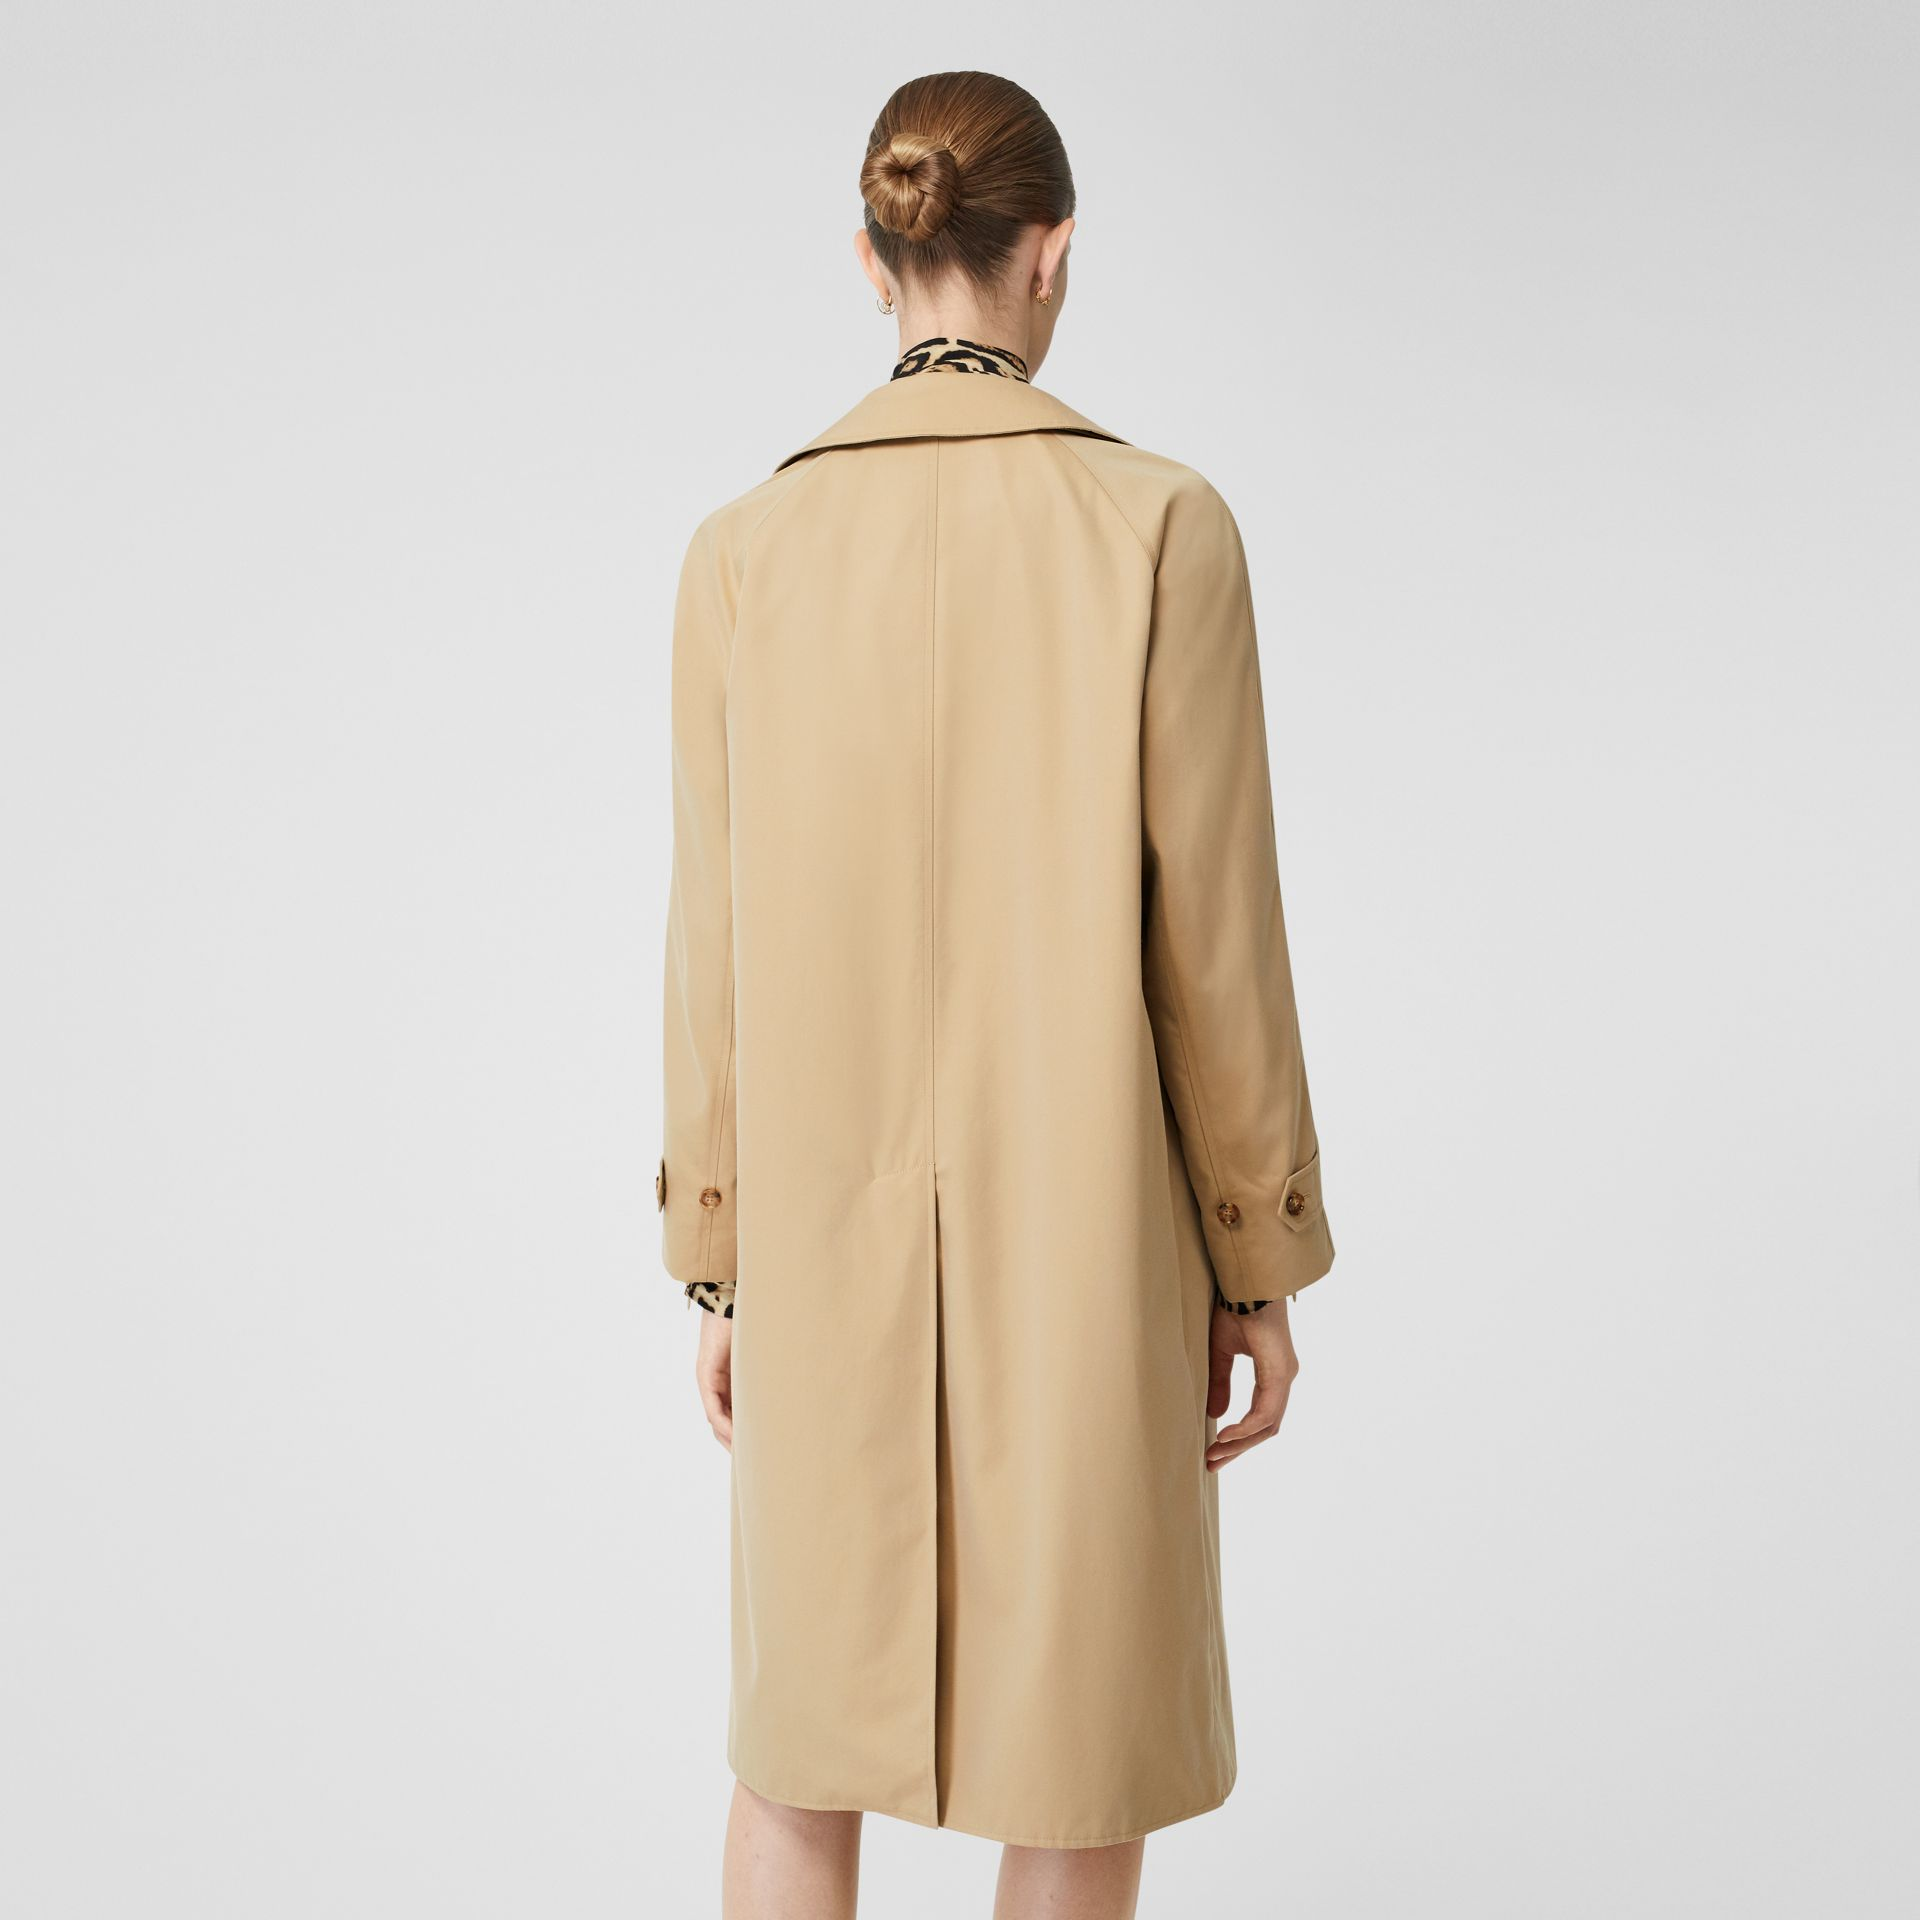 Leopard Print-lined Cotton Gabardine Car Coat in Honey - Women | Burberry Australia - gallery image 2